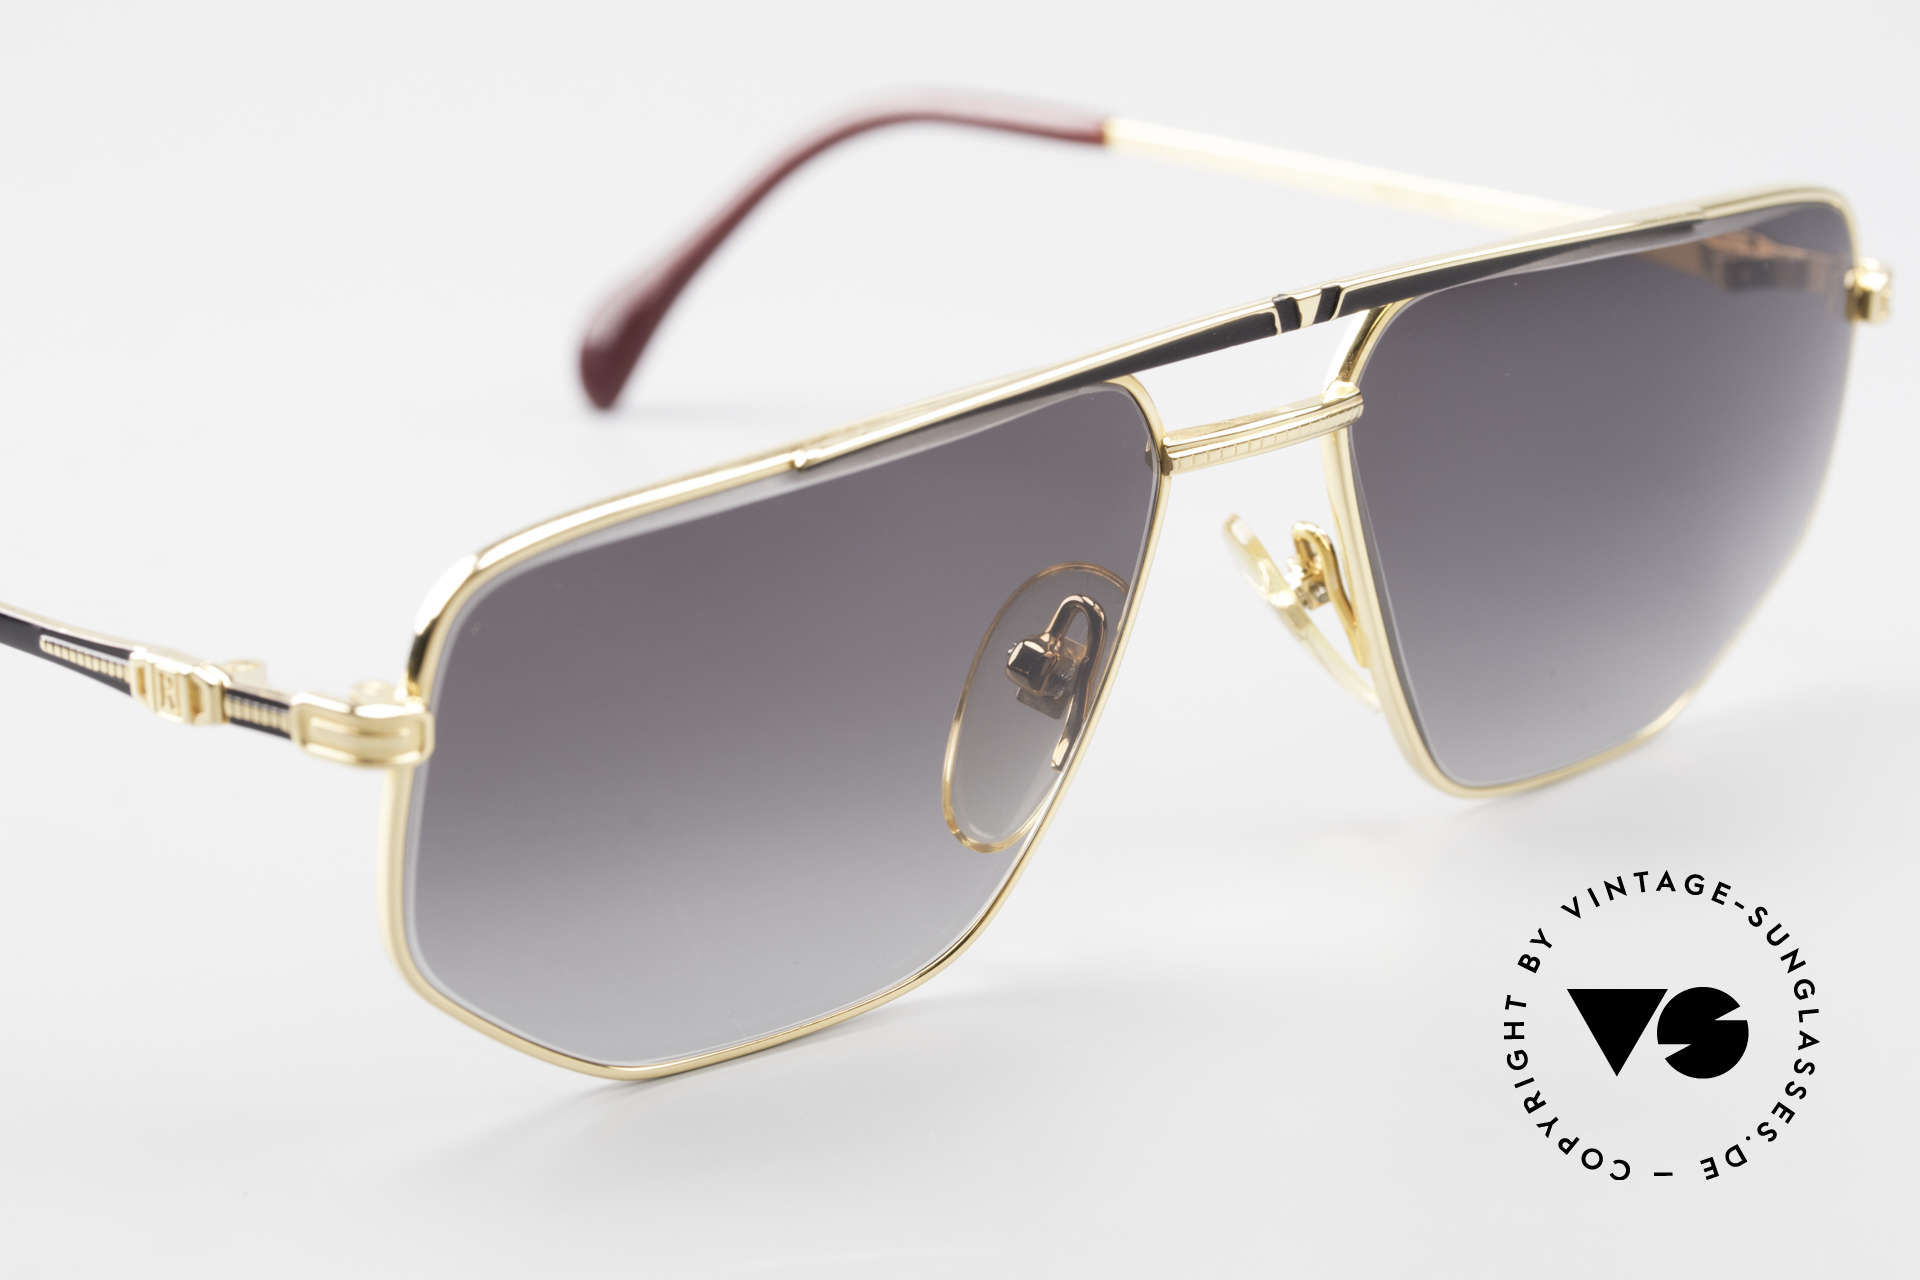 Roman Rothschild R1037 Gold Plated Shades Luxury, NO retro shades, but a precious original from the 80's, Made for Men and Women